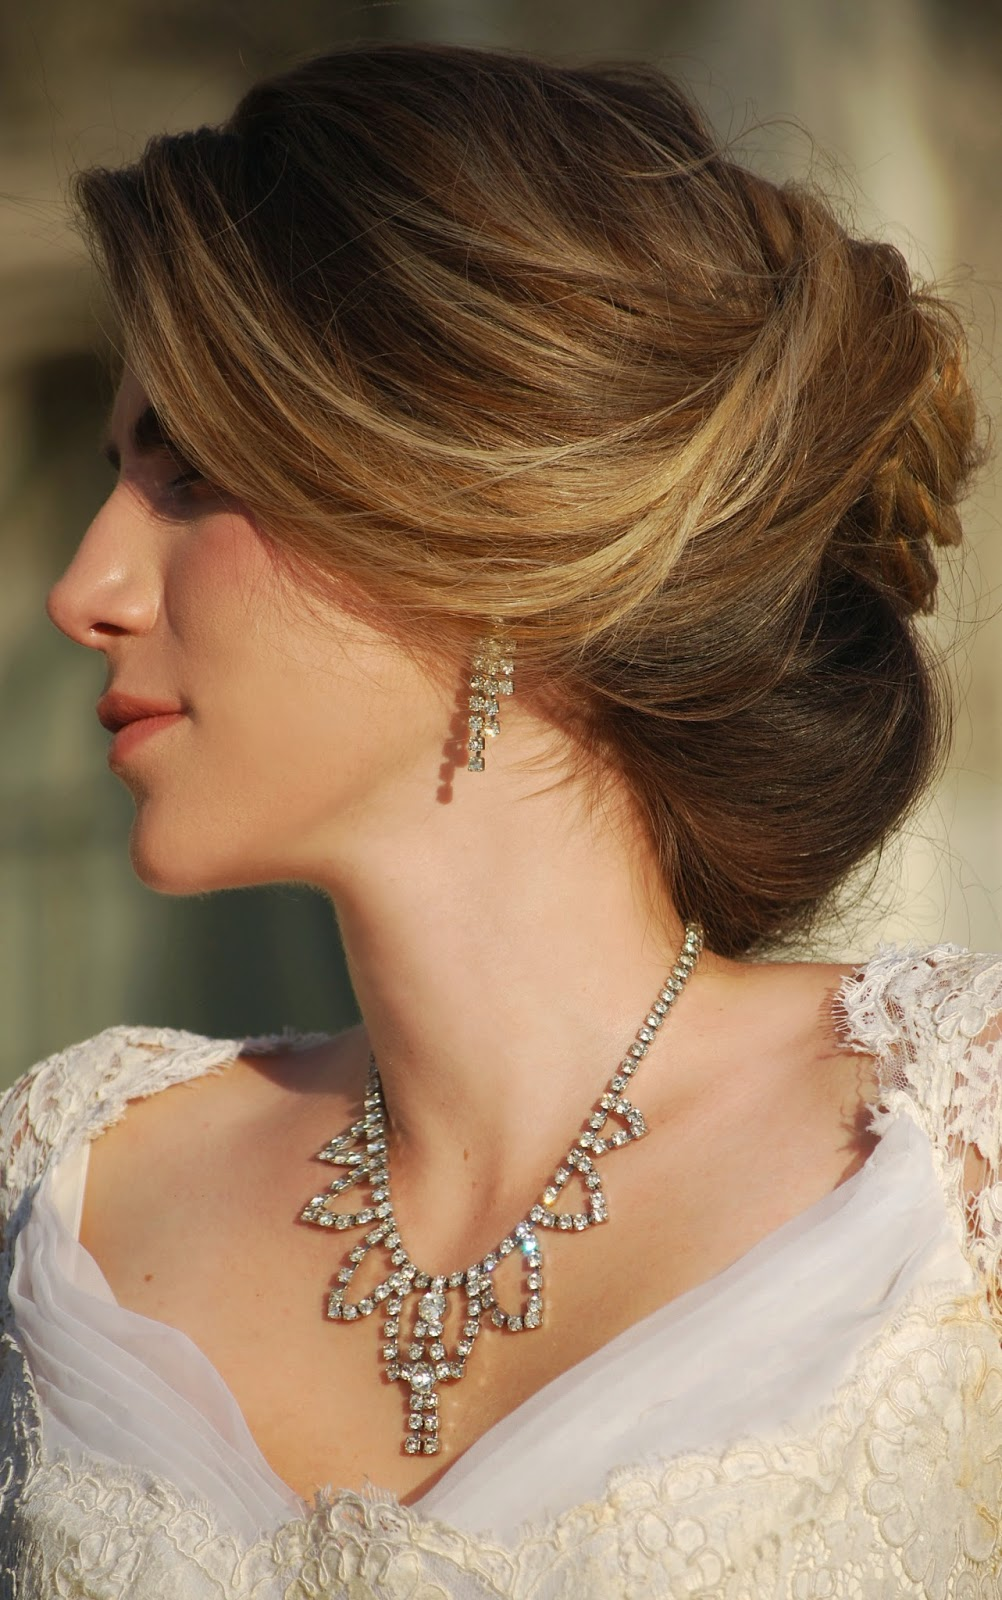 Best Hairstyles For Long Hair Wedding Hair Fashion Style: 10 Best Hairstyles For Long Hair Updos : Hair Fashion